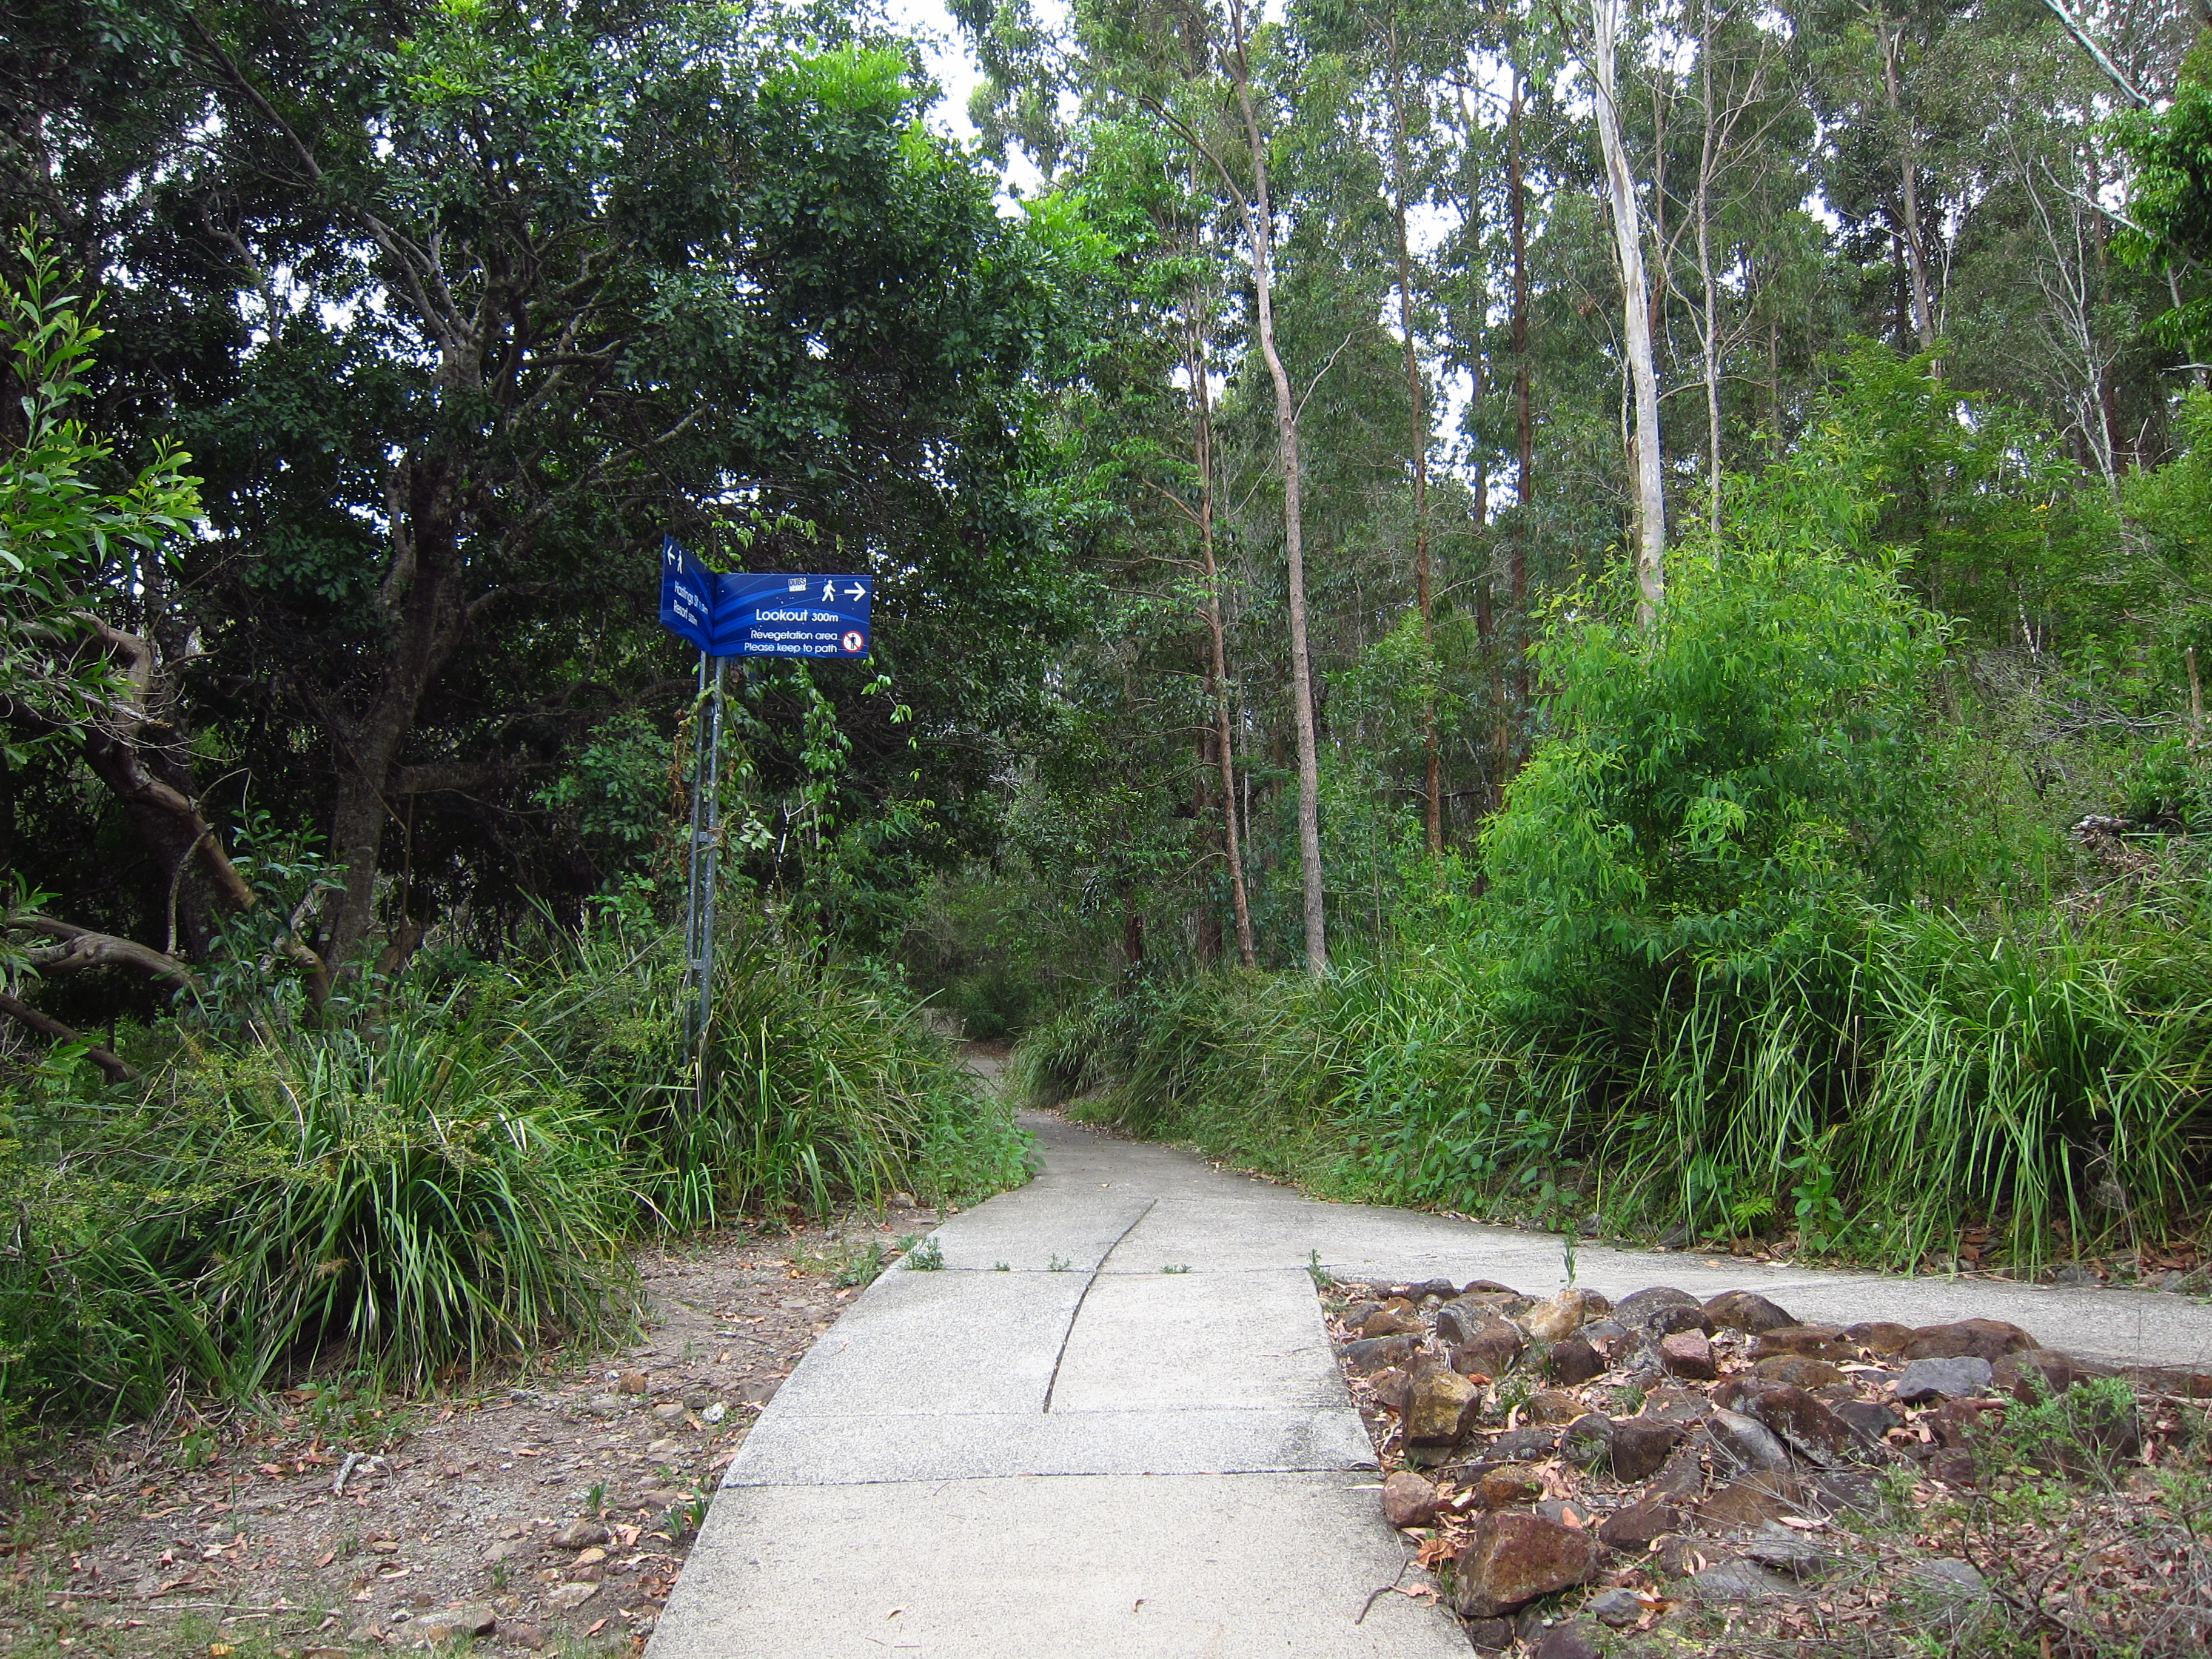 34. Trail to Laguna Lookout